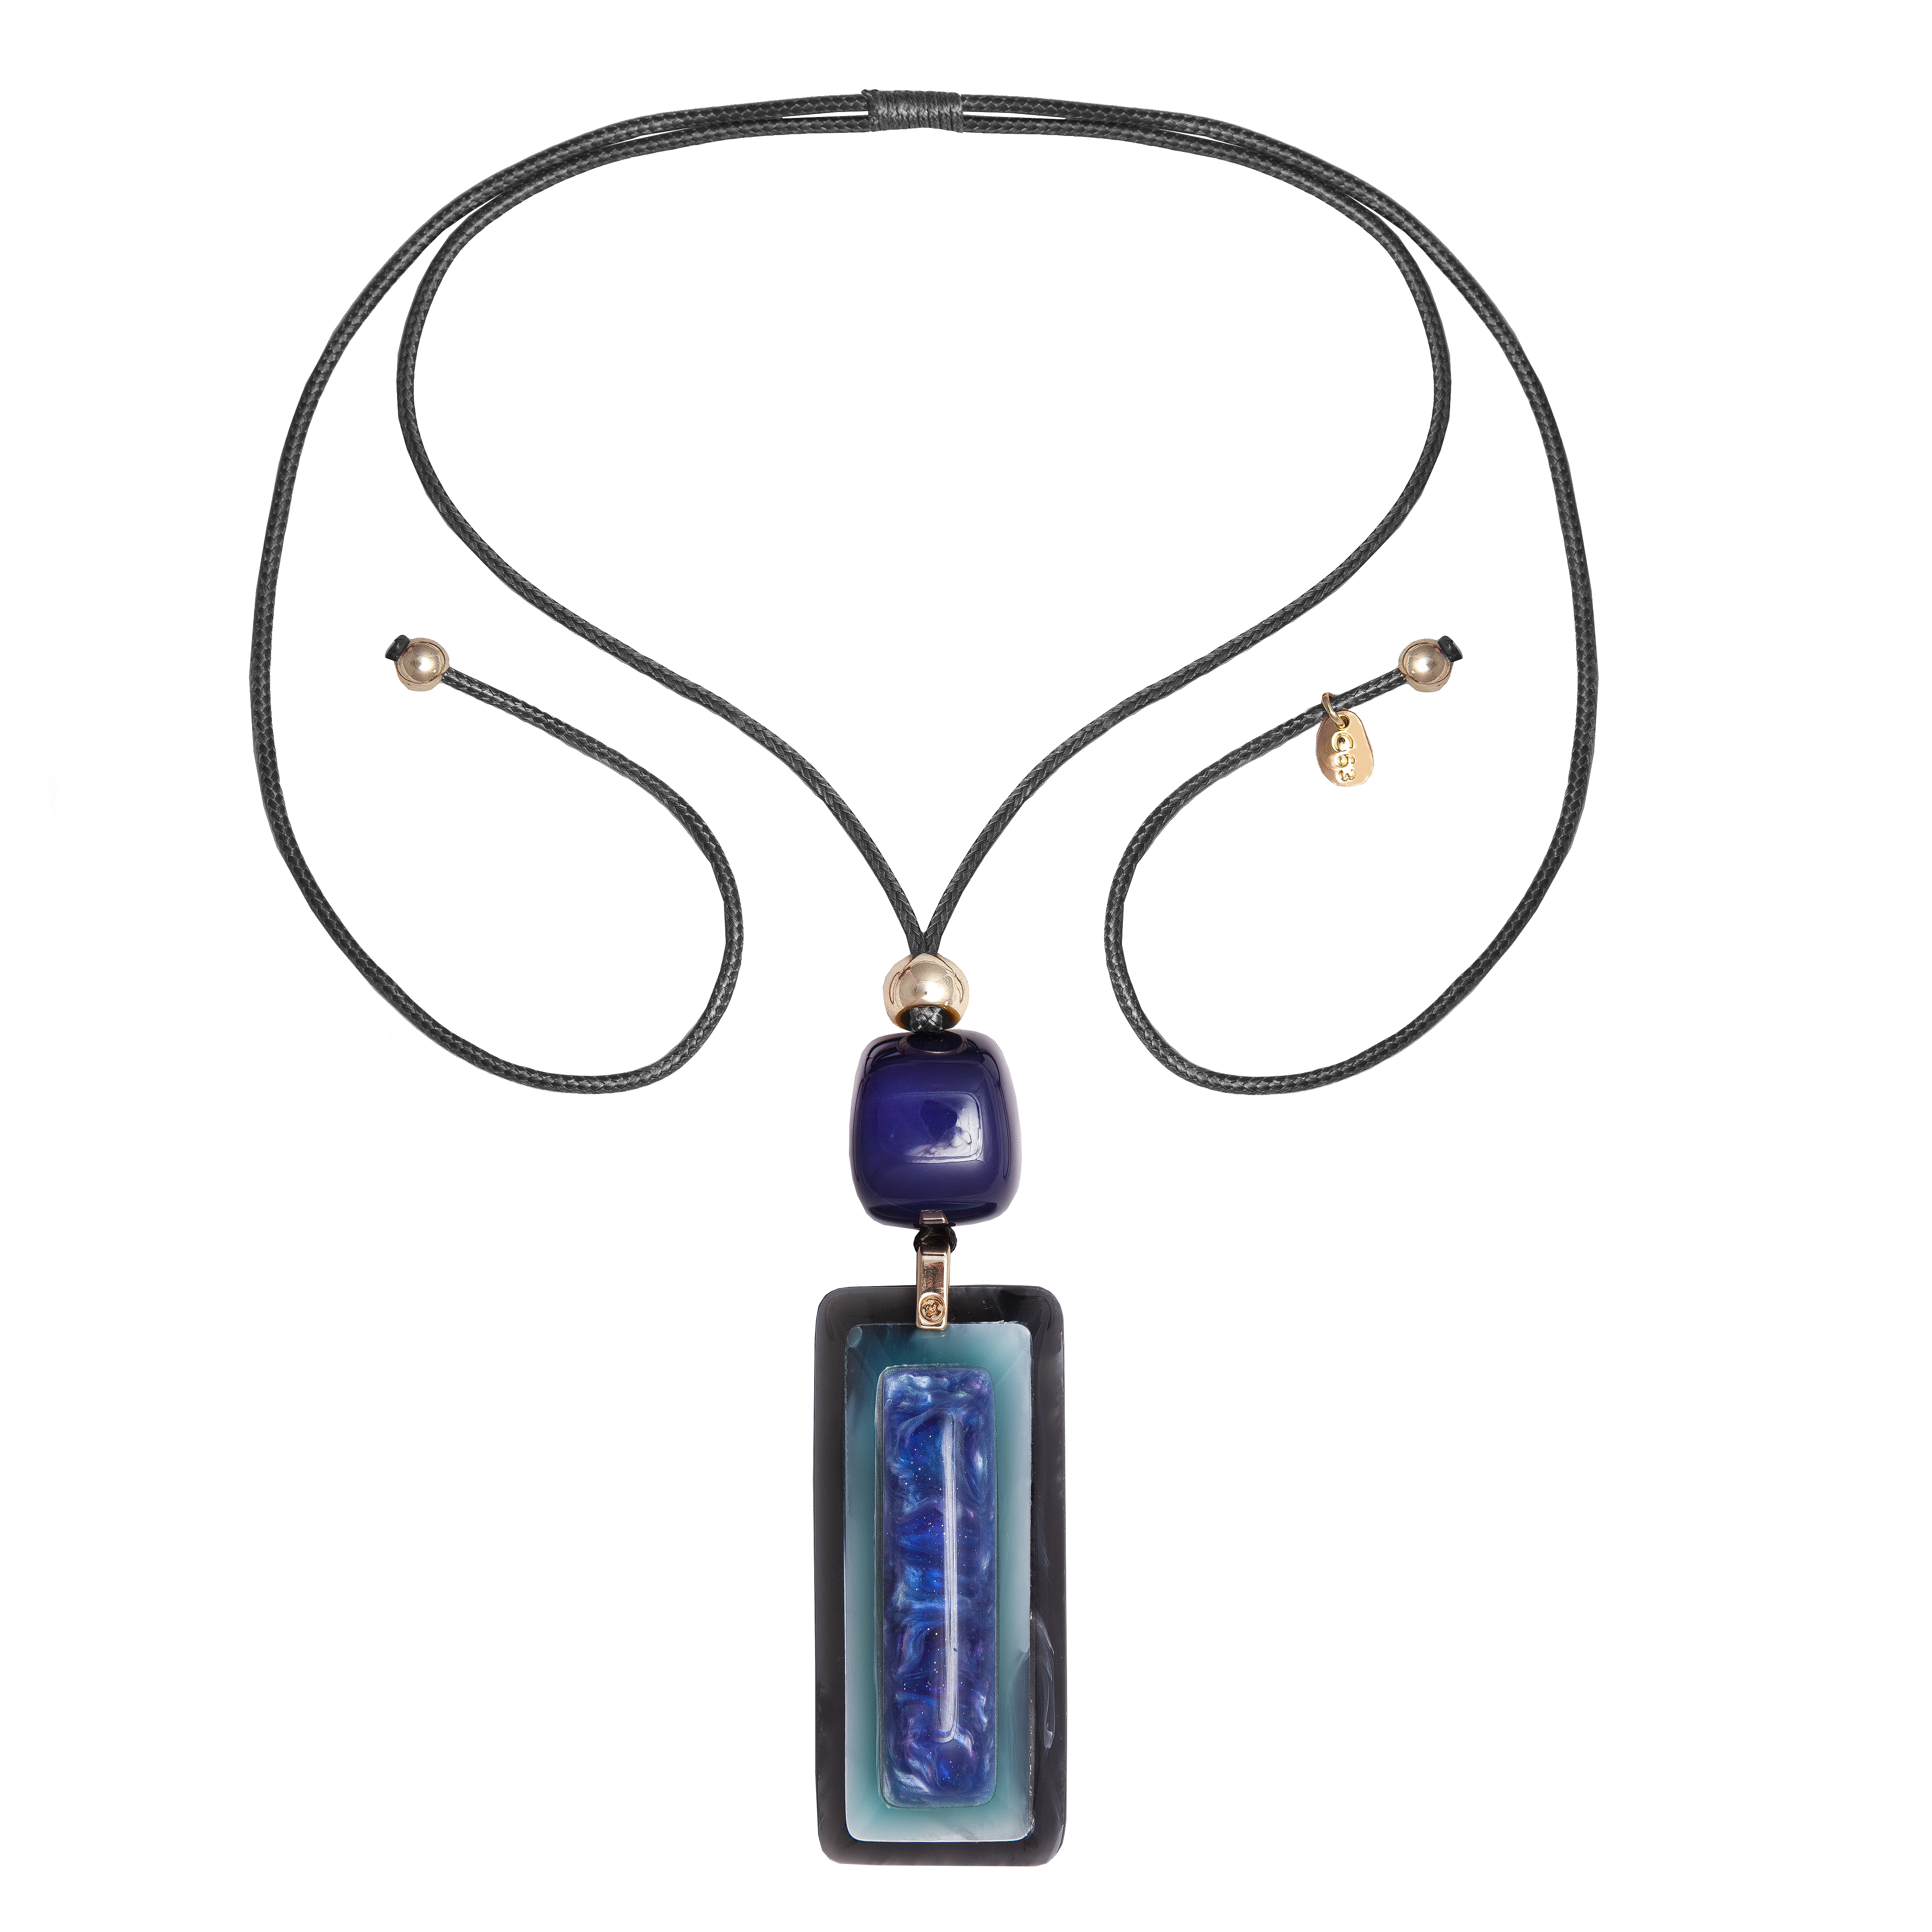 Blue Rectangle Necklace can extend to any length